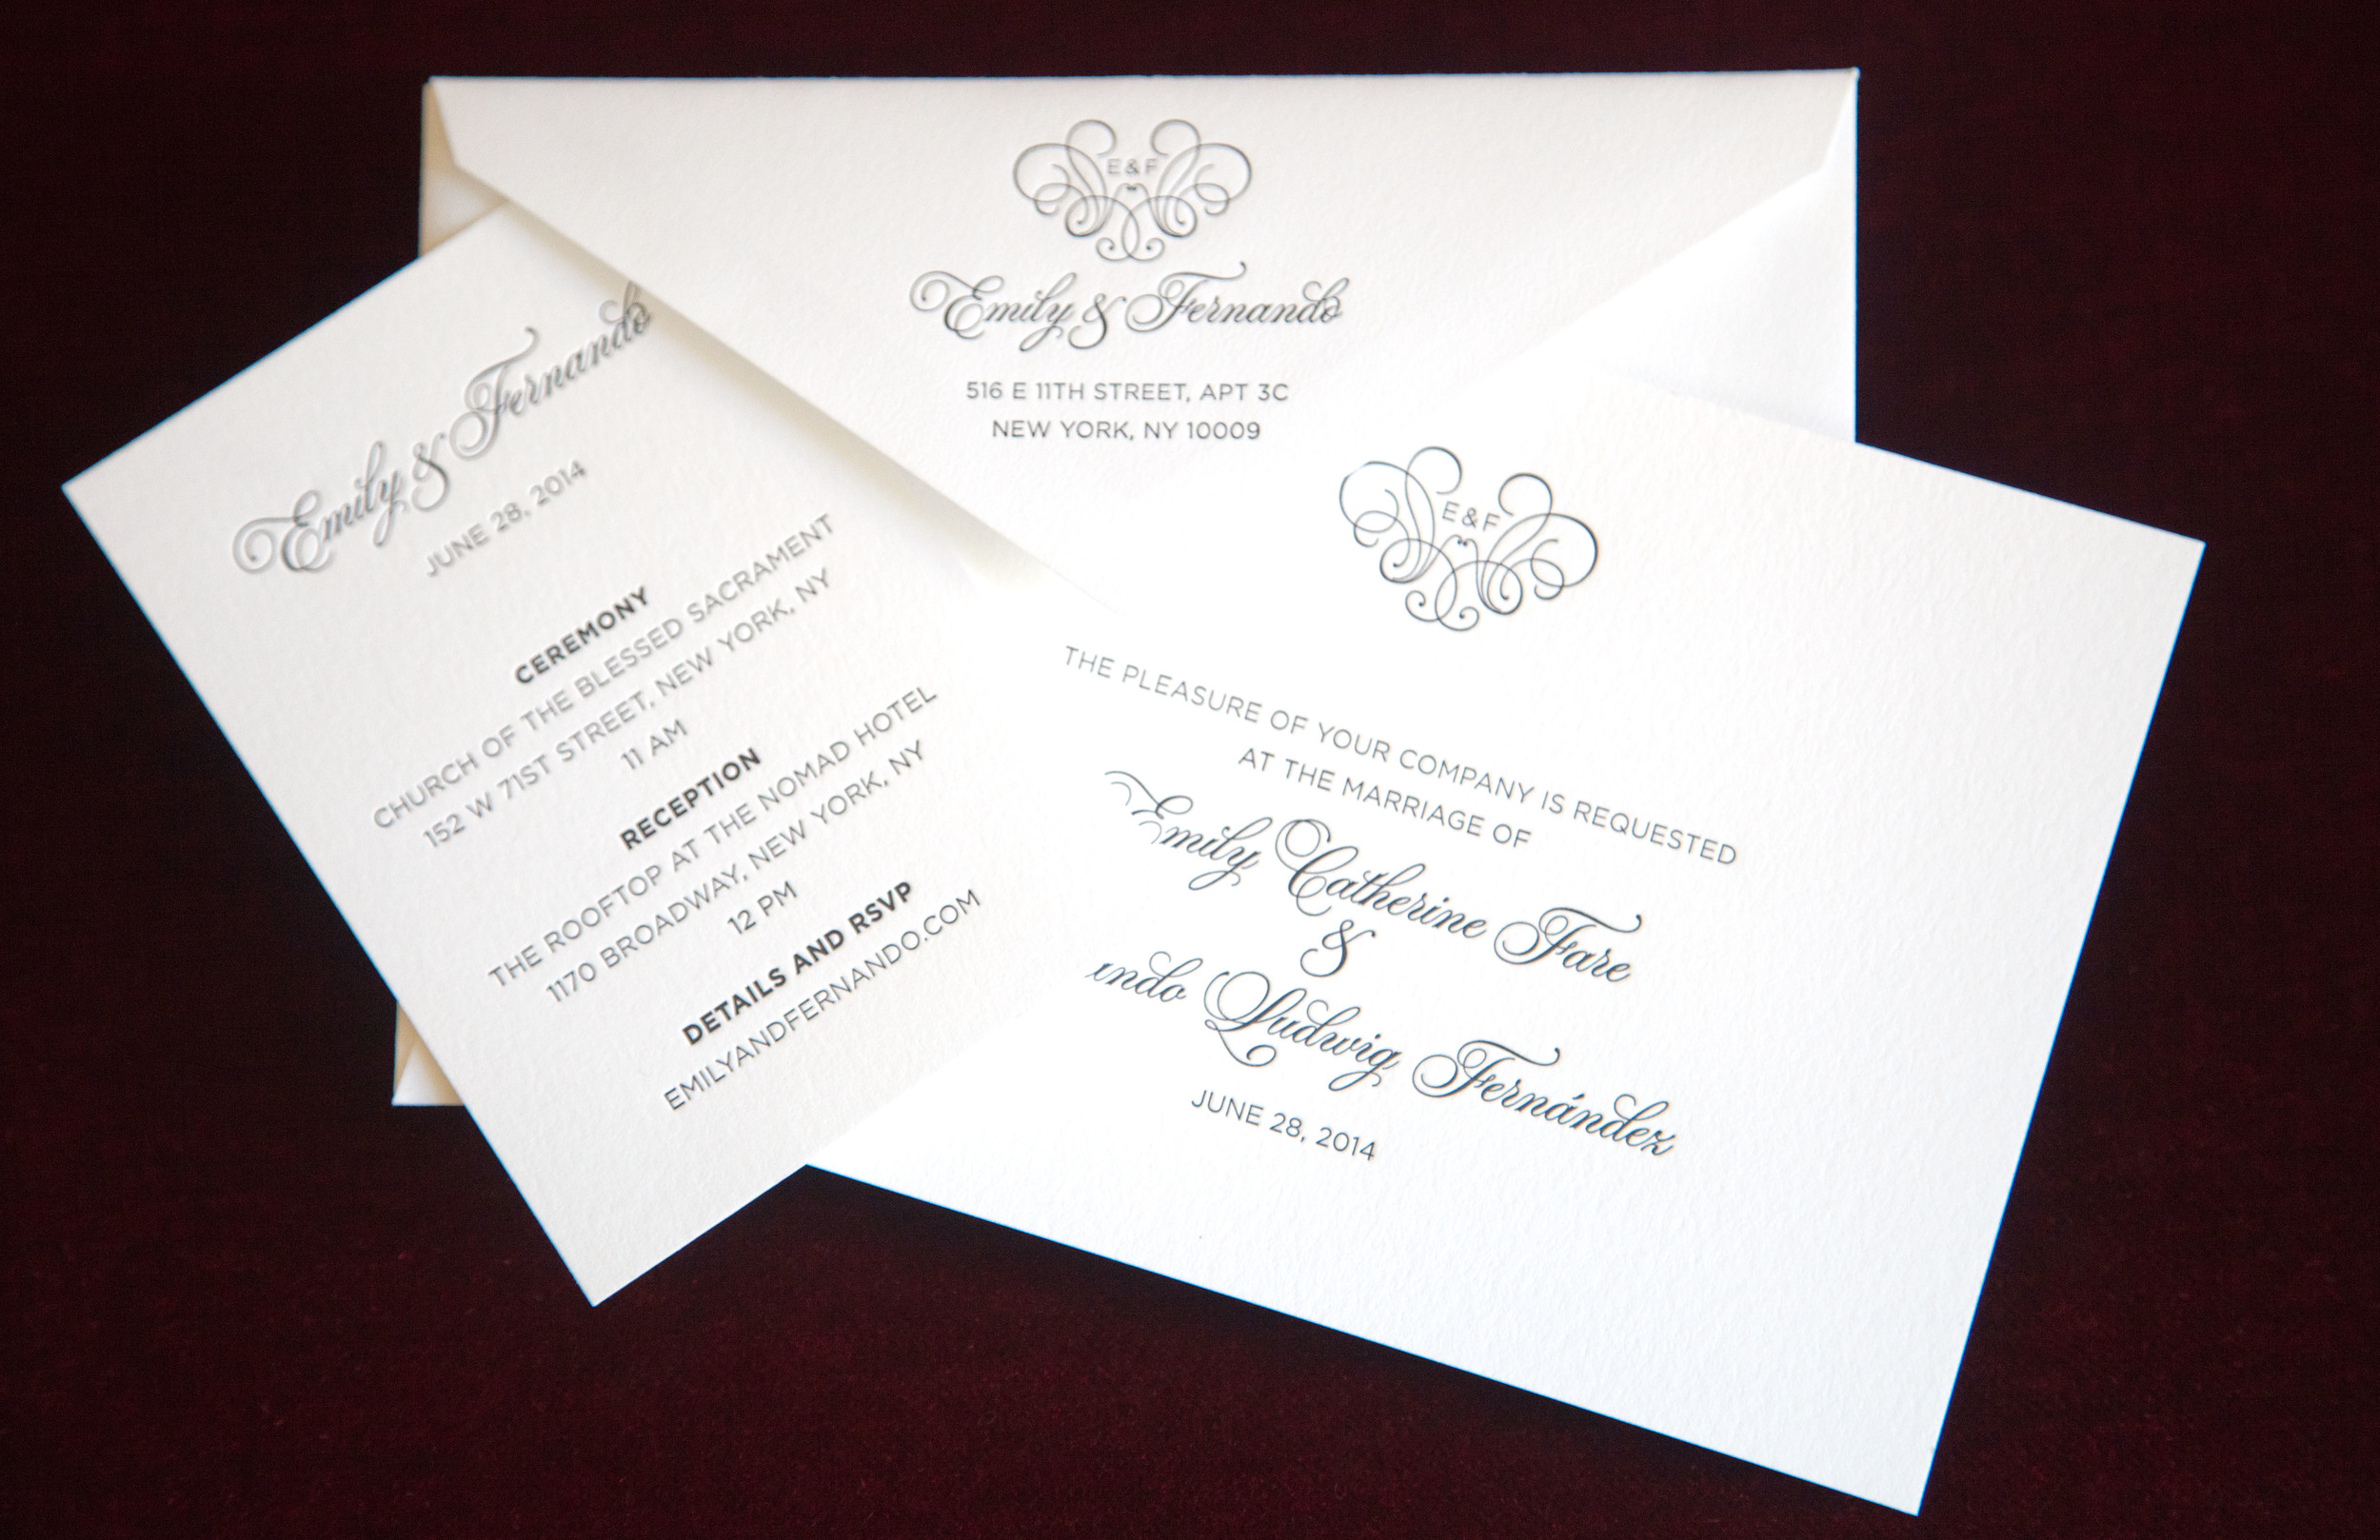 LETTERPRESS INVITES PRINTED BY THE GROOM